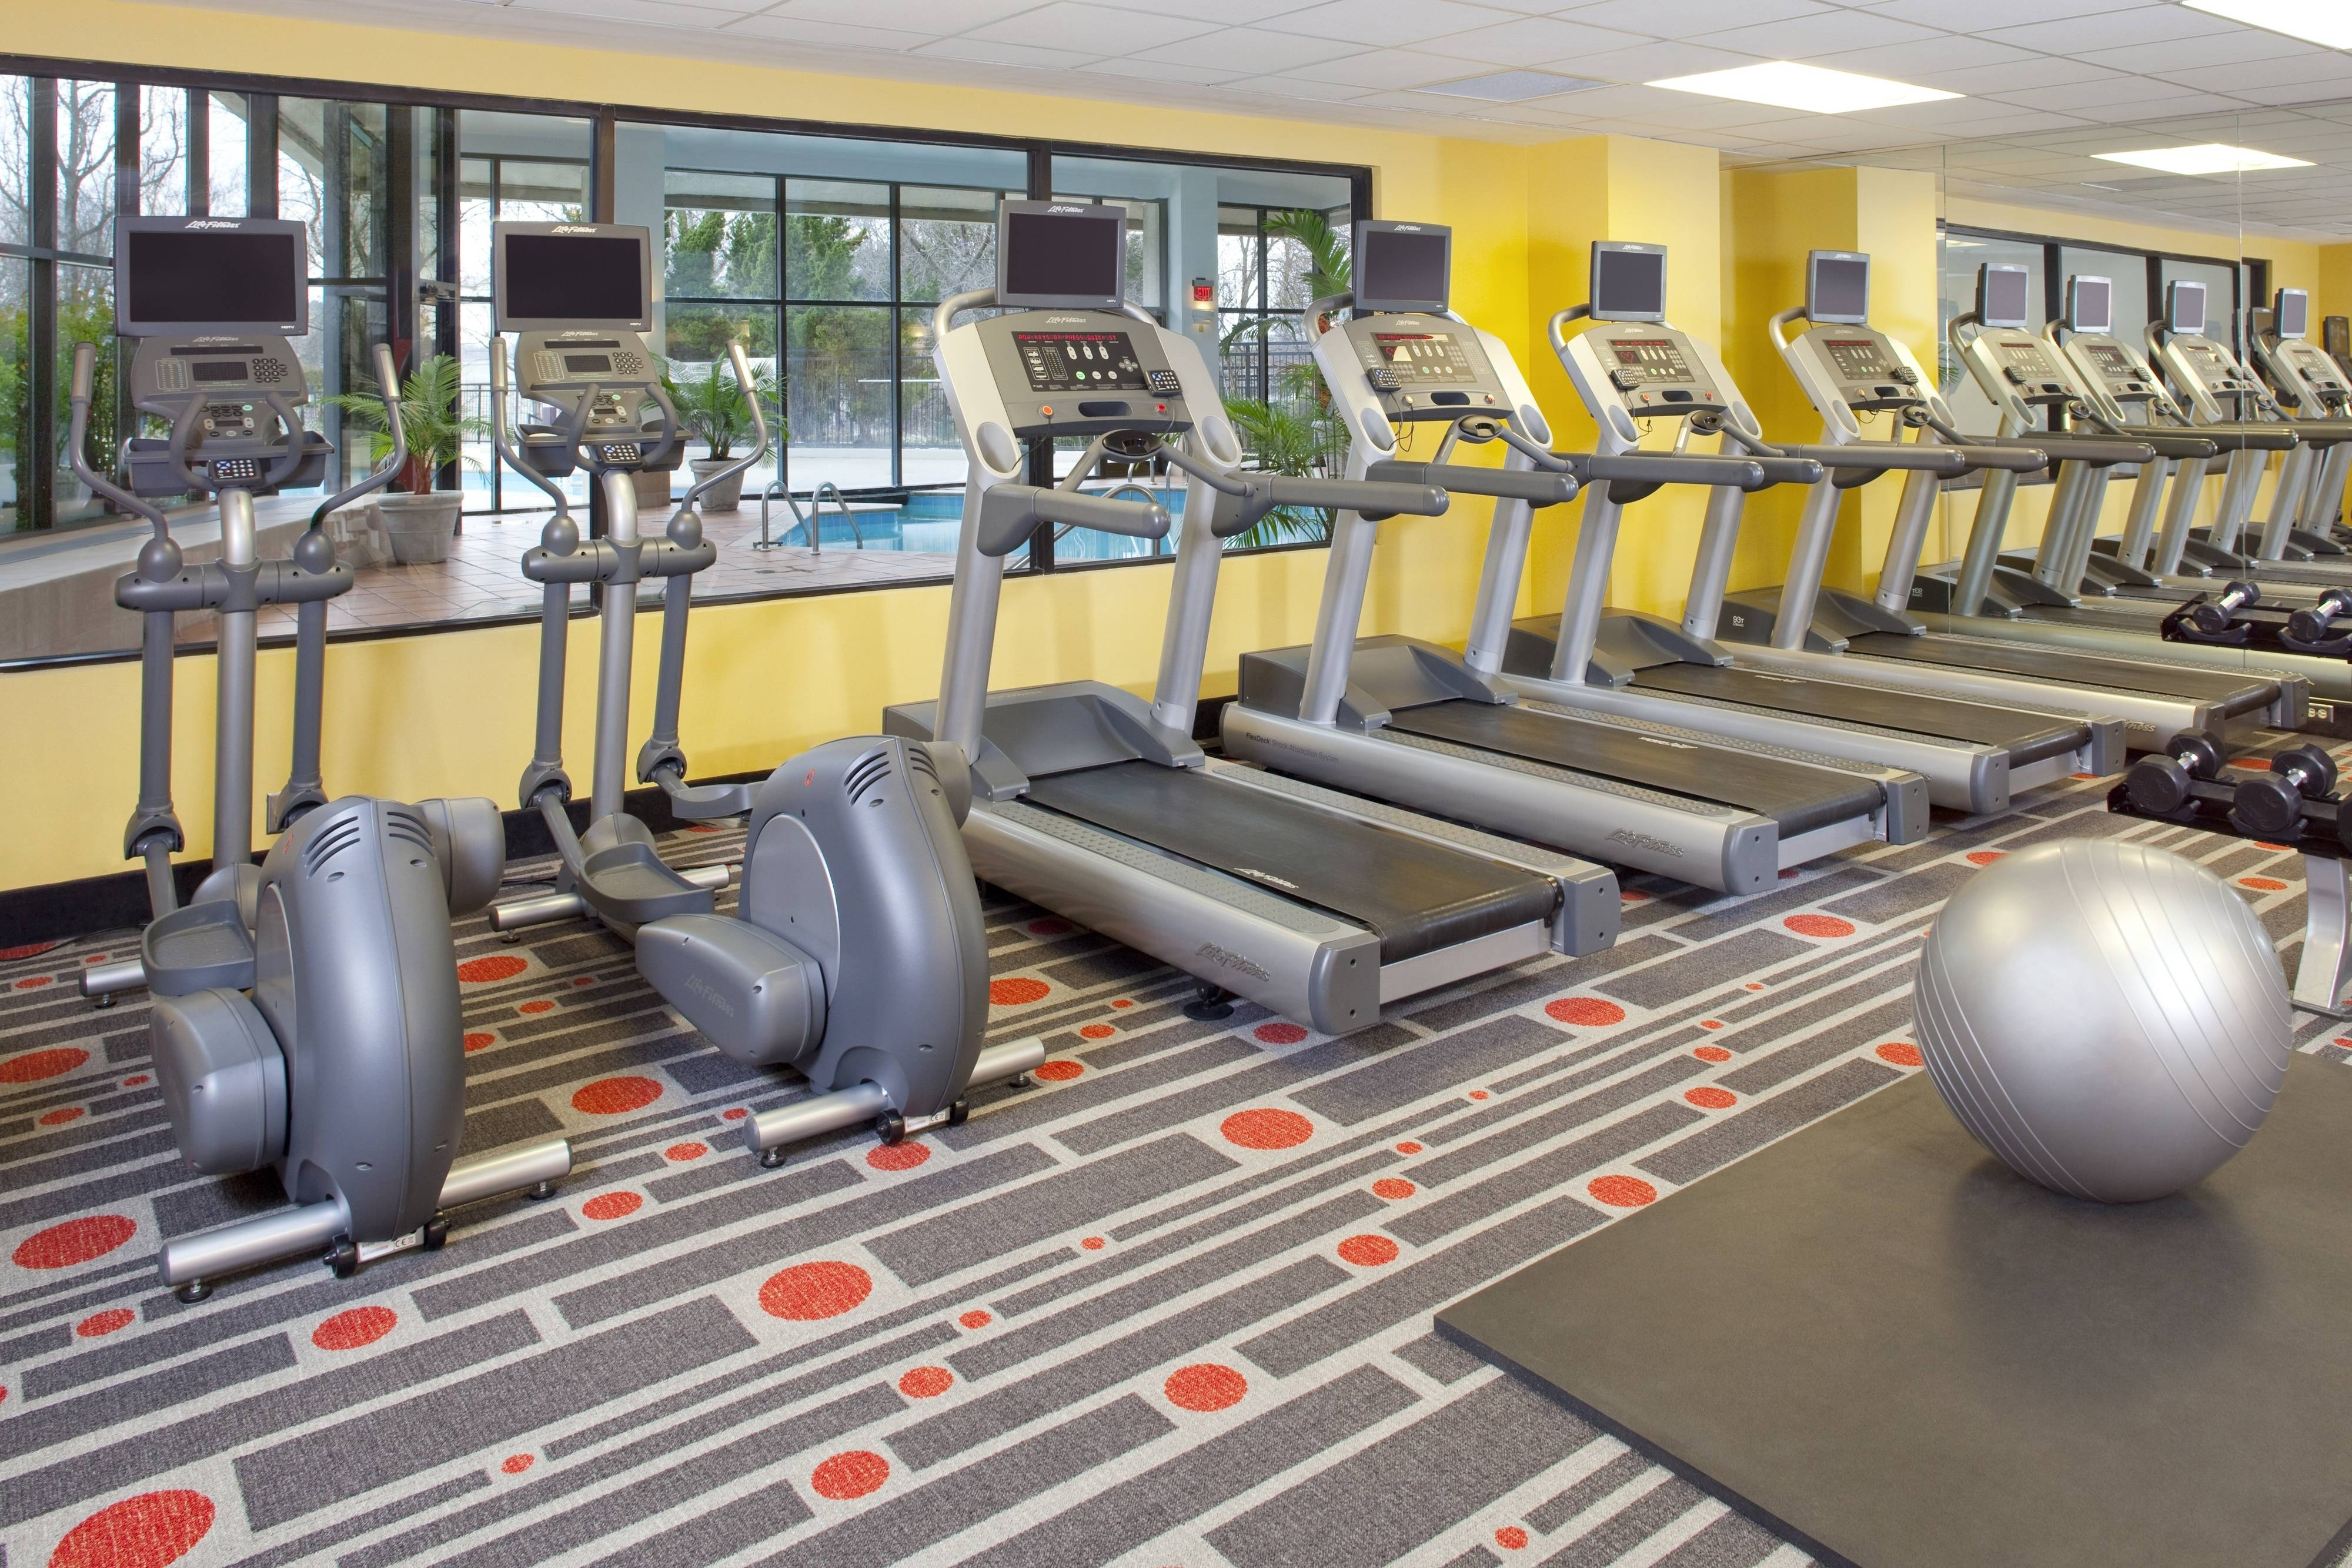 Nashville Airport Hotel Fitness Center